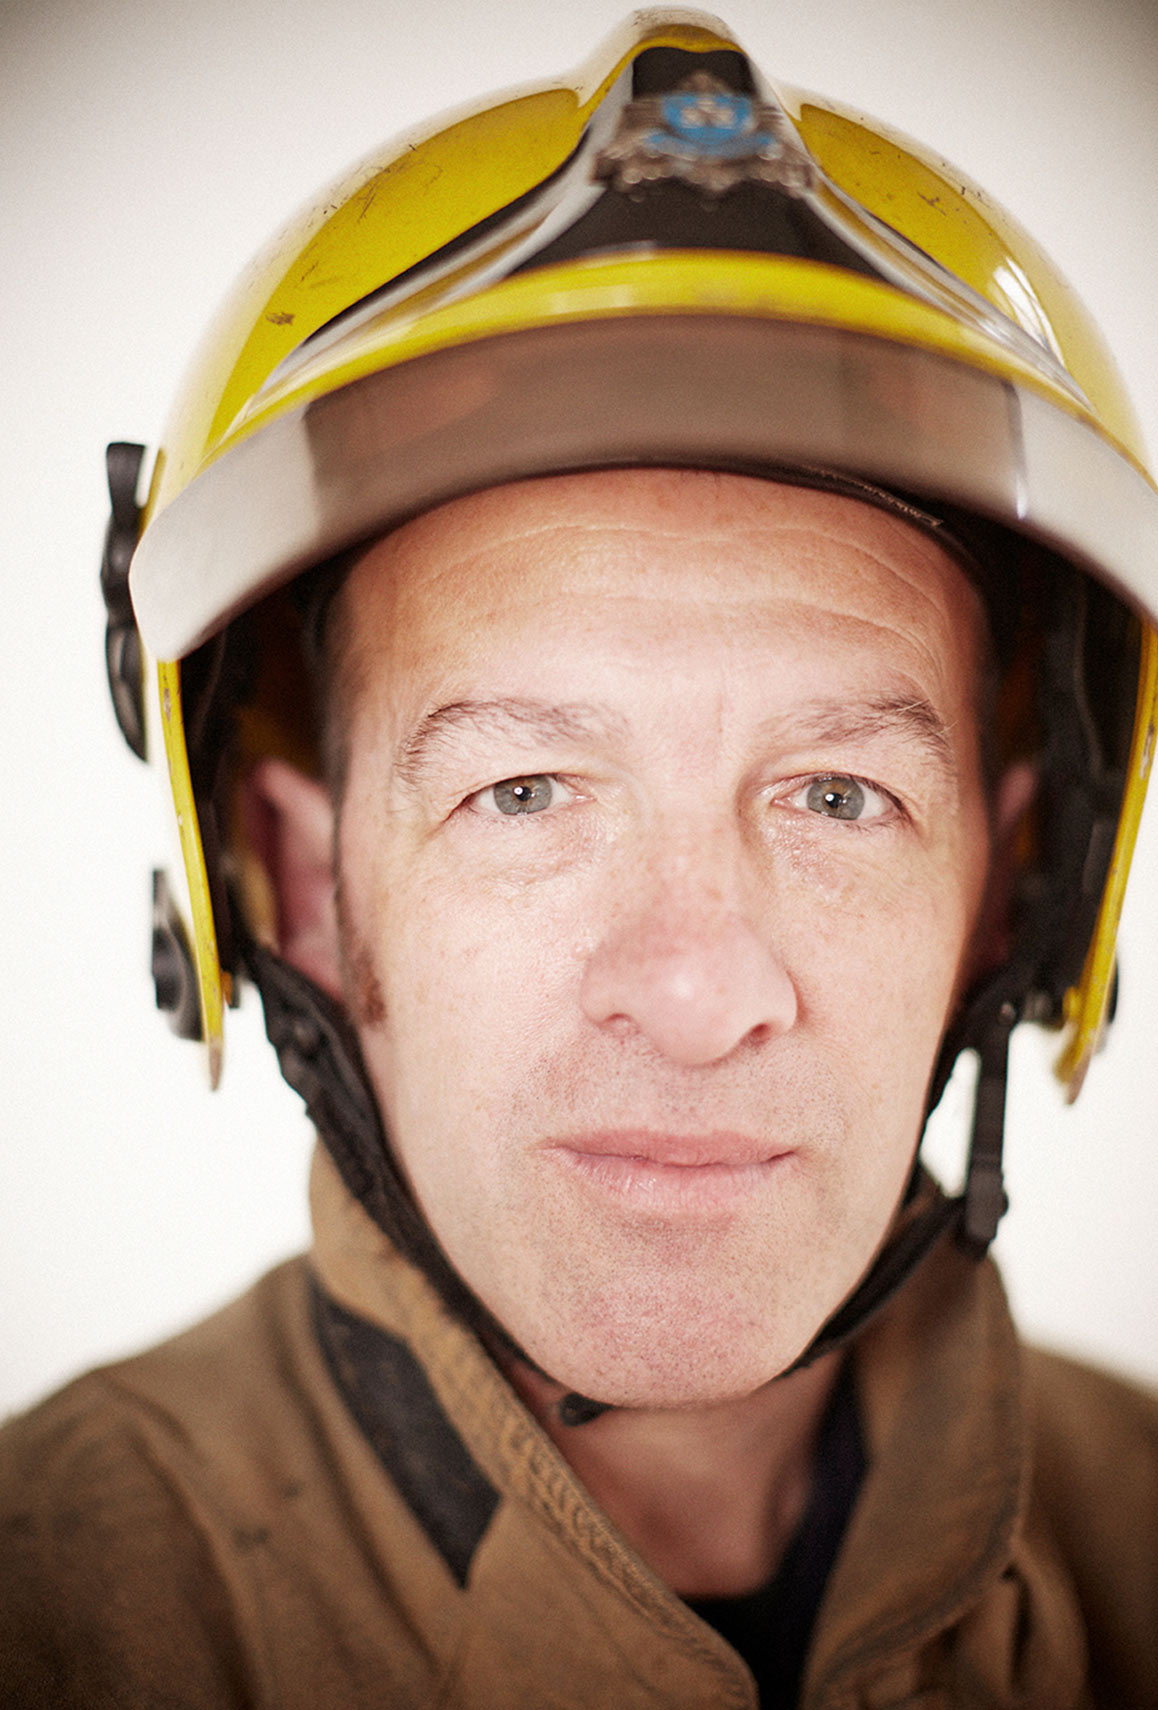 Fire brigade portrait